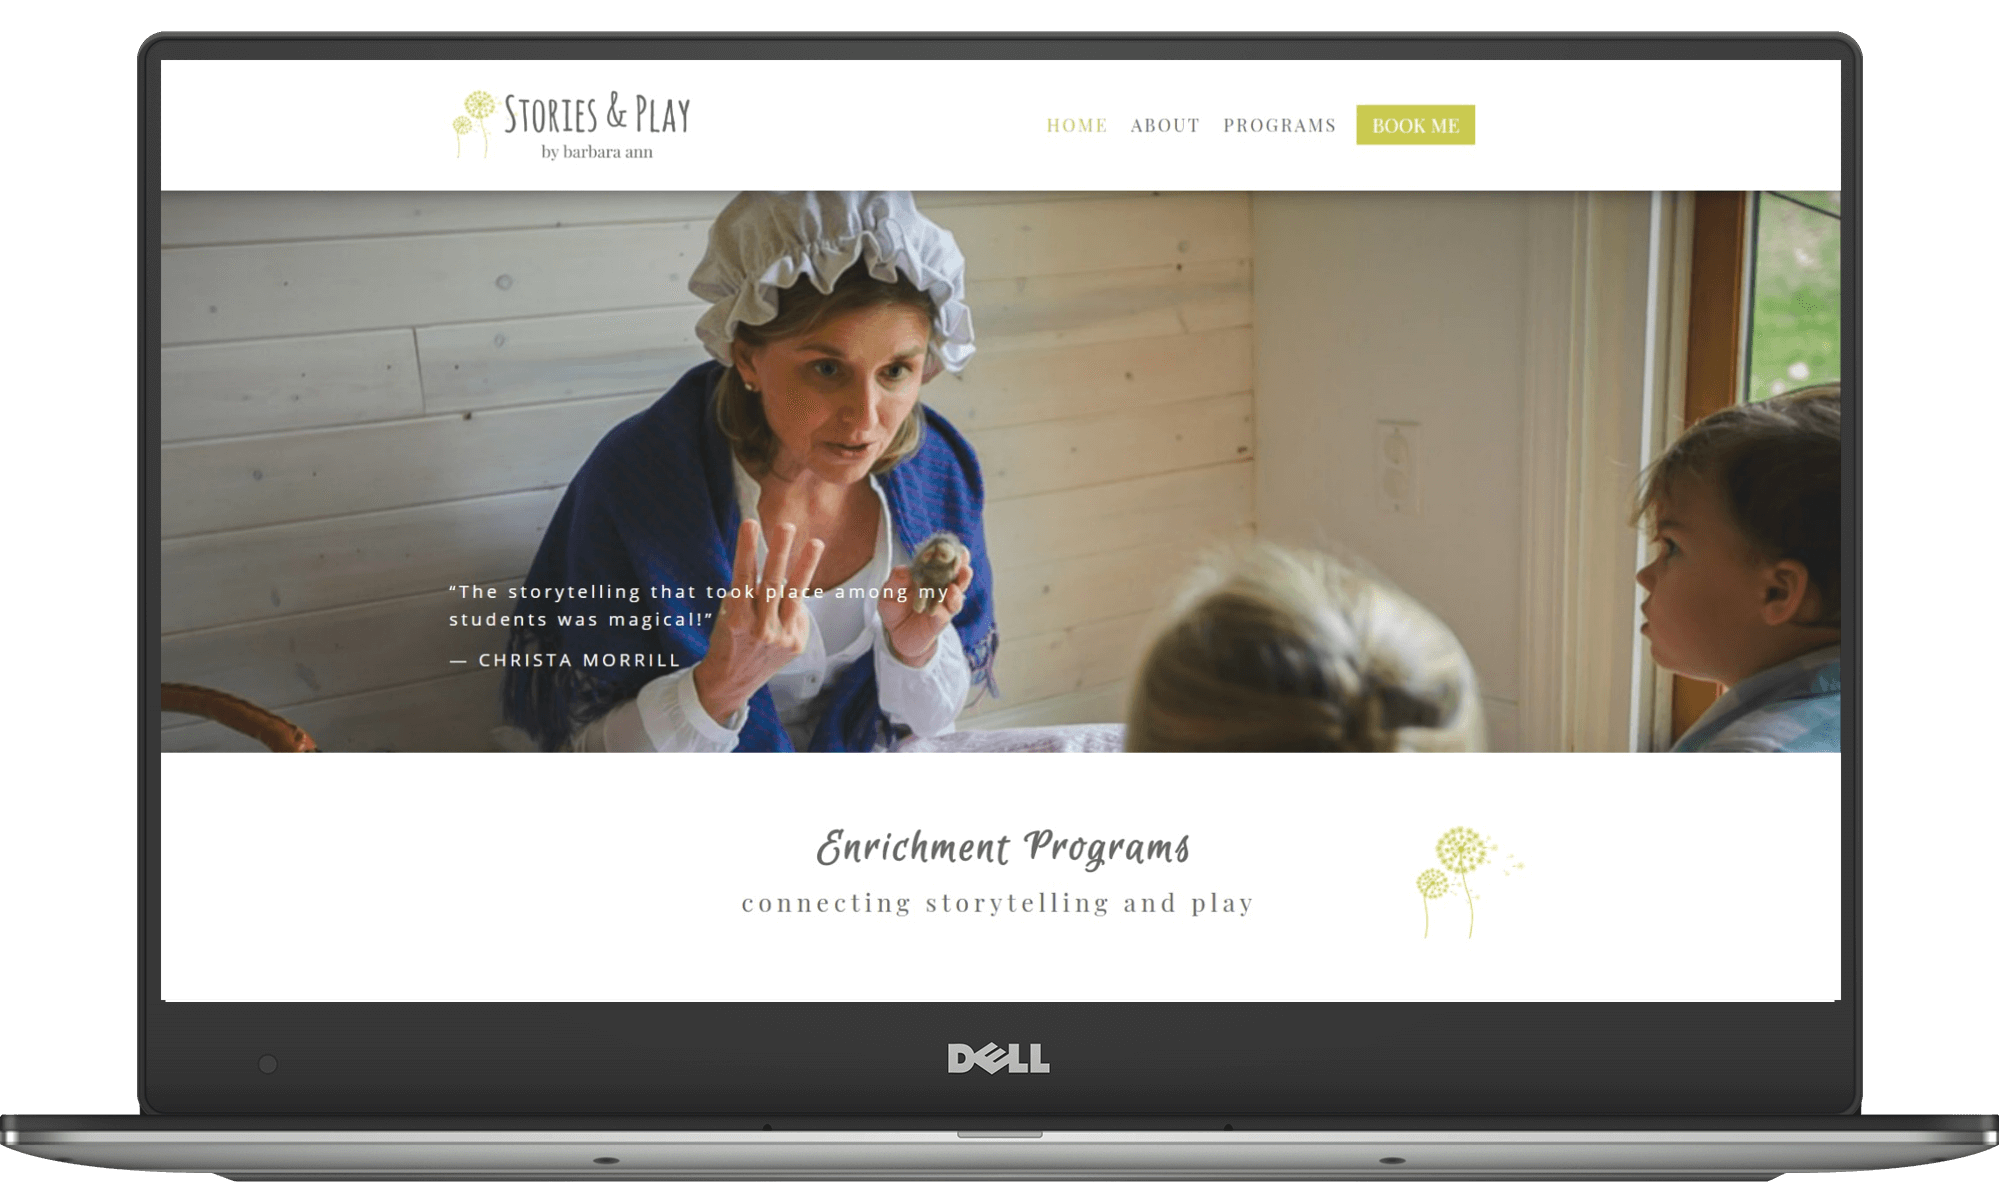 Stories and Play website designed by Deb Mantel Design